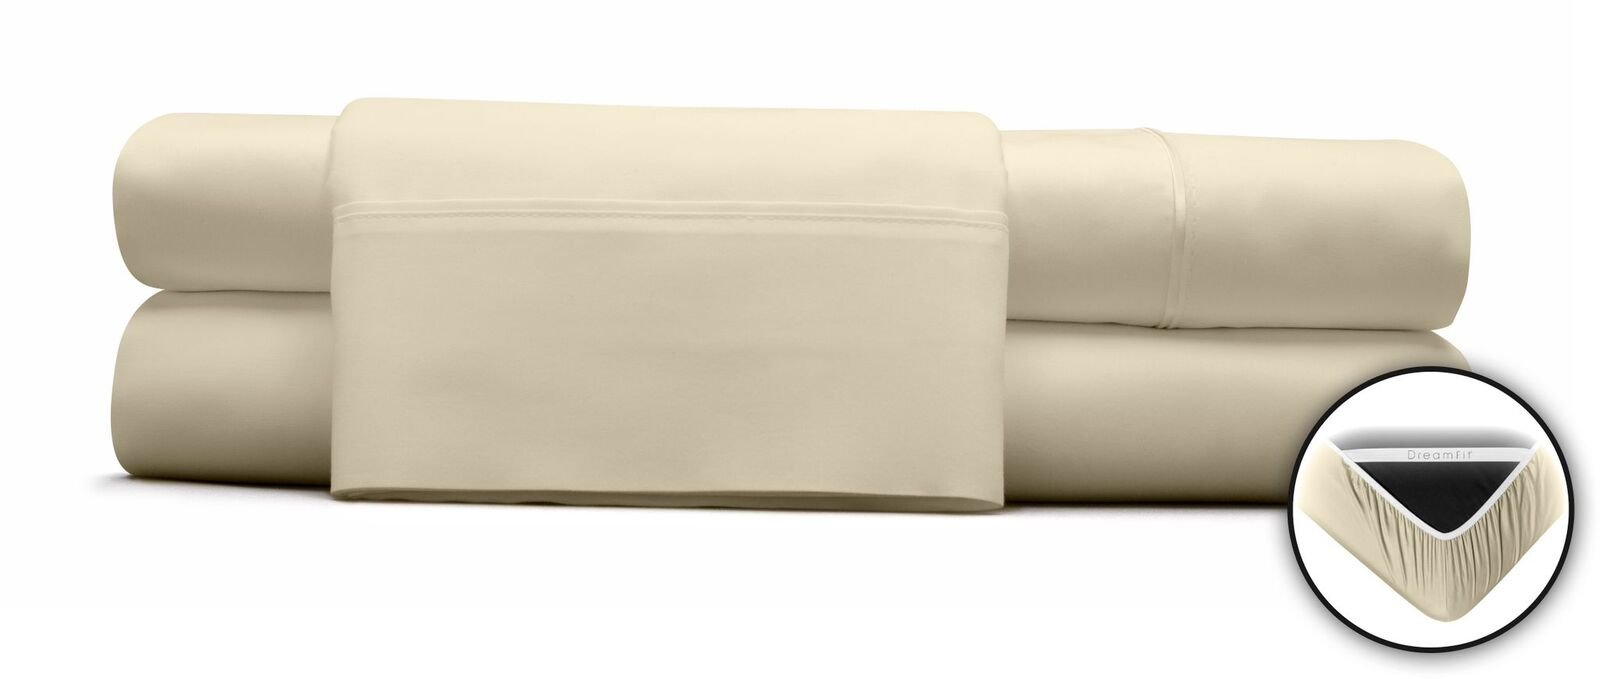 DreamFit BAMBOO DEGREE 5 ECRU SPLIT HEAD CAL KING SHEET SET